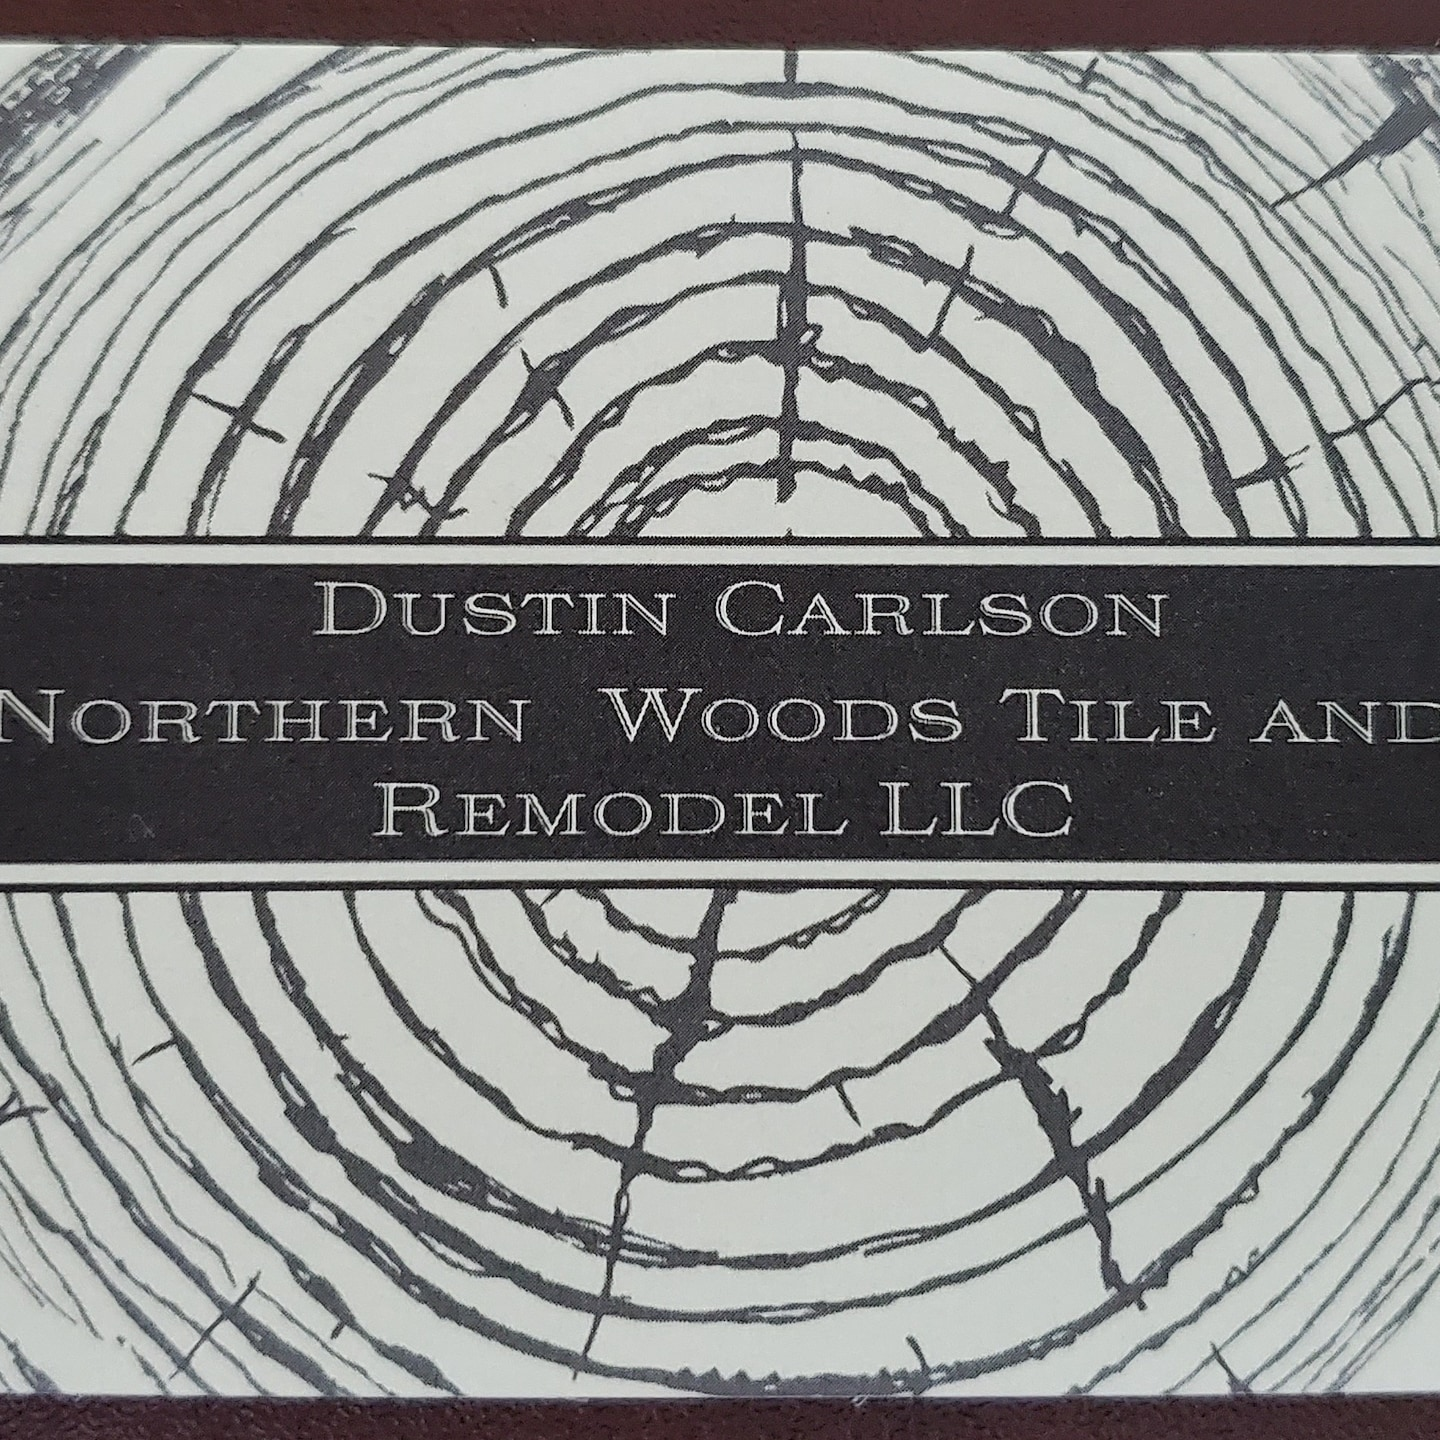 Northern Woods Tile and Remodel